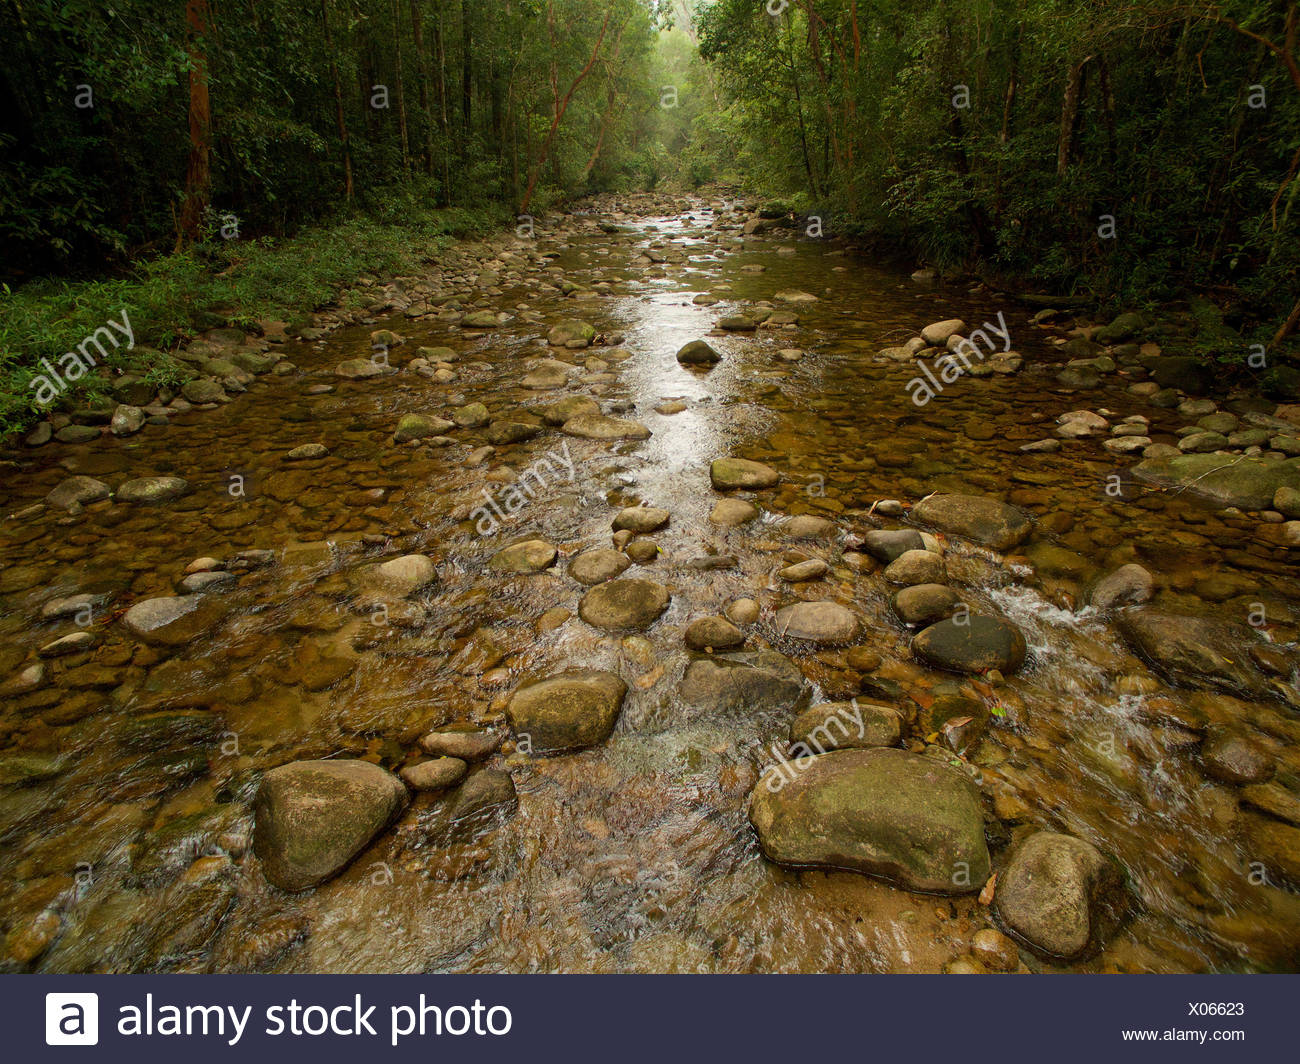 Air Putih river passing through lowland rain forest. - Stock Image